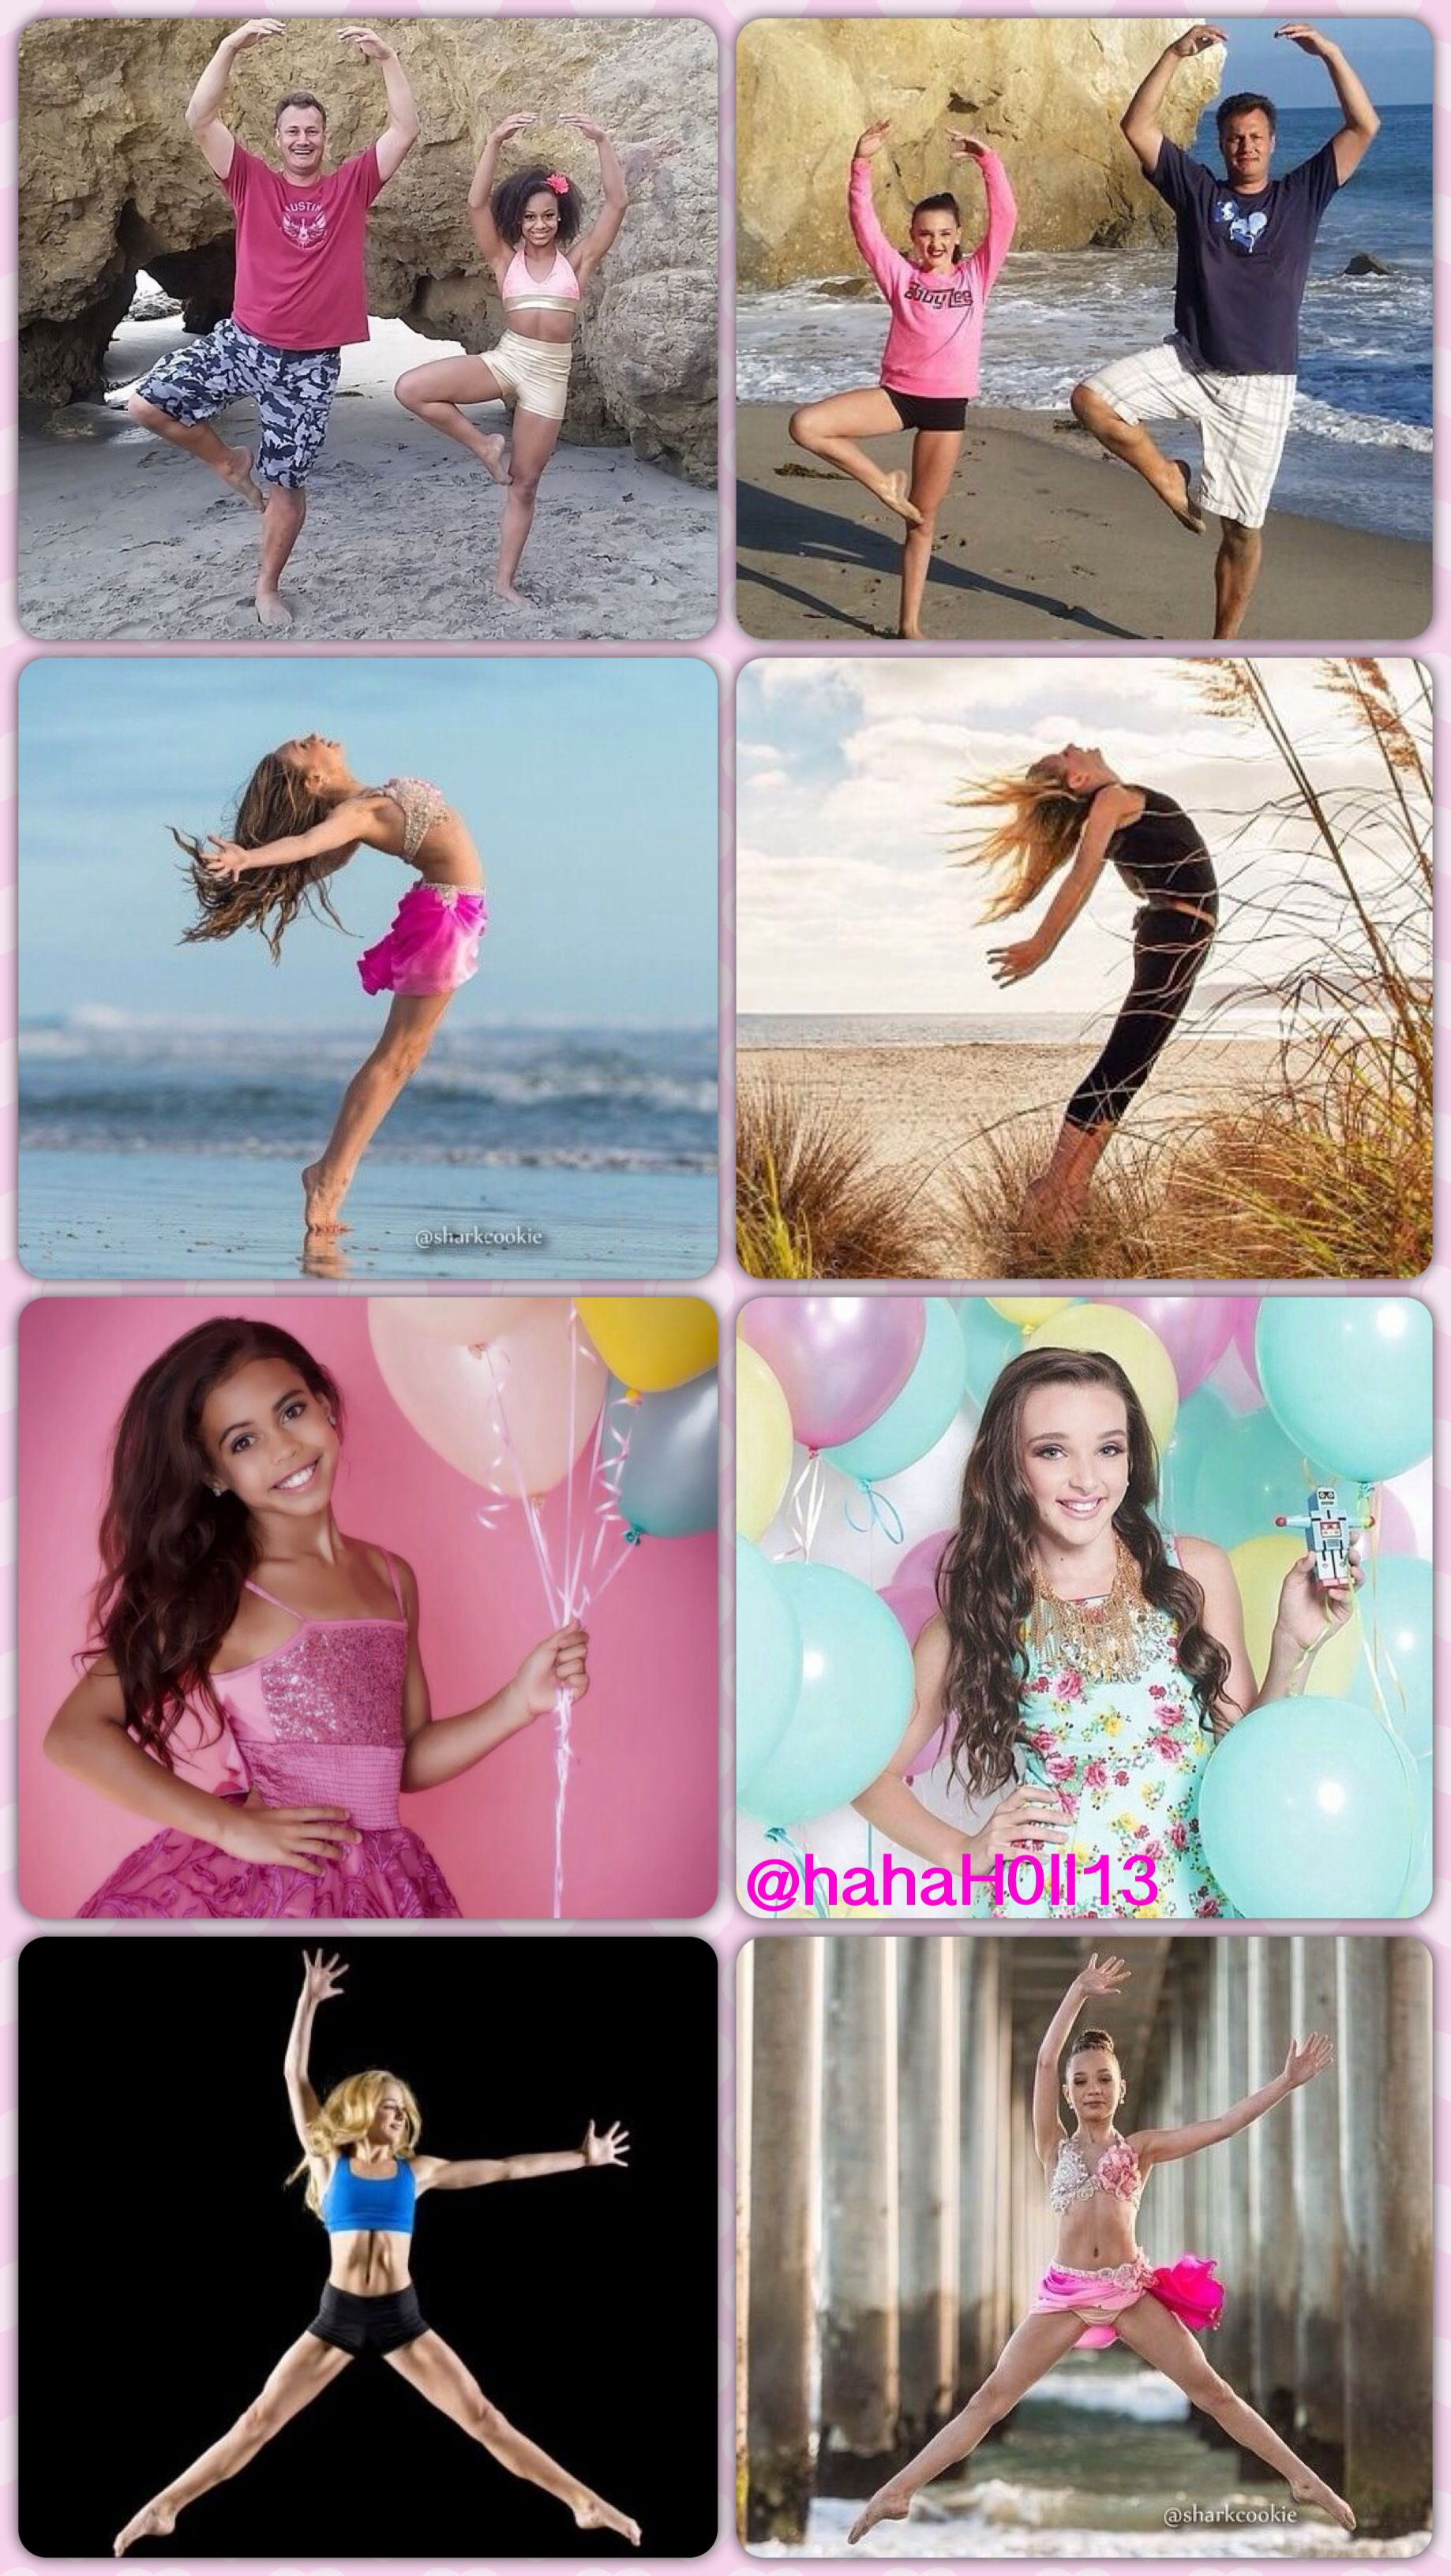 Credit for this edit to @hahaH0ll13. Please leave credit on here. Dance Moms edit of photo shoots